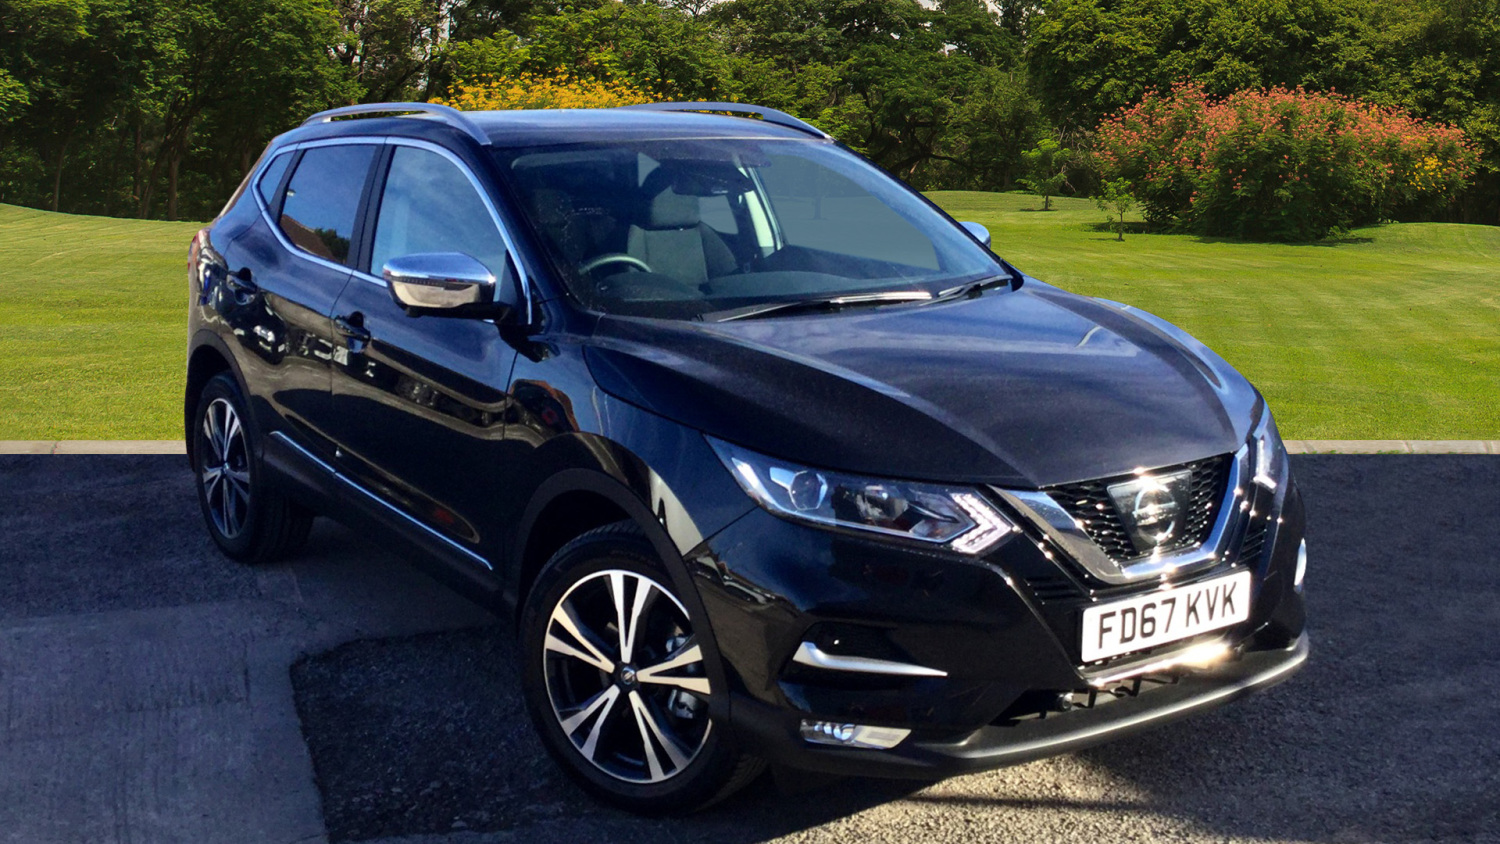 used nissan qashqai 1 5 dci n connecta glass roof pack 5dr diesel hatchback for sale vertu honda. Black Bedroom Furniture Sets. Home Design Ideas